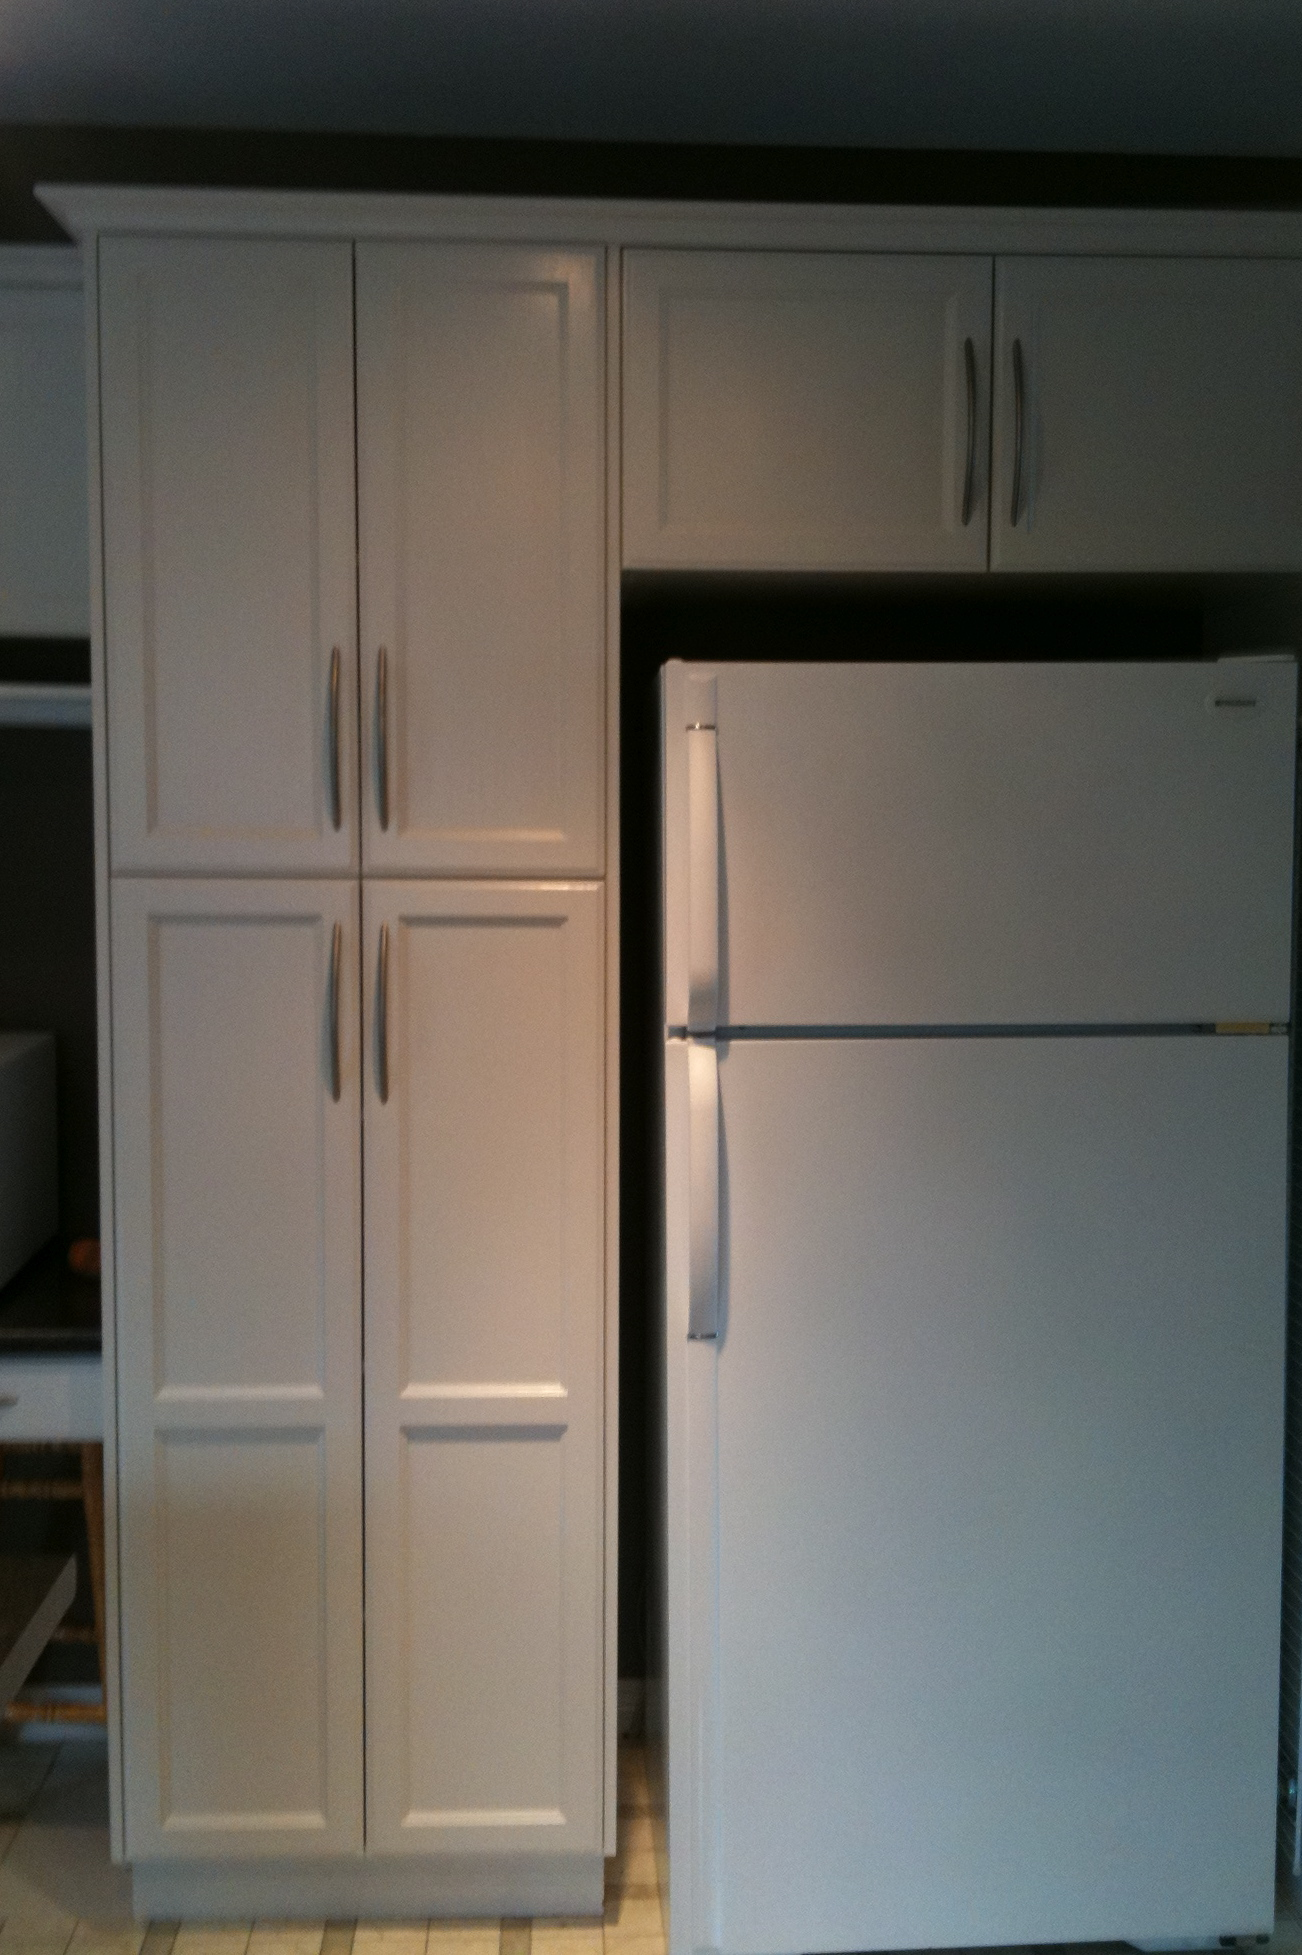 Cabinet repainting to paint or restain raelistic artistic for Best paint and primer for kitchen cabinets